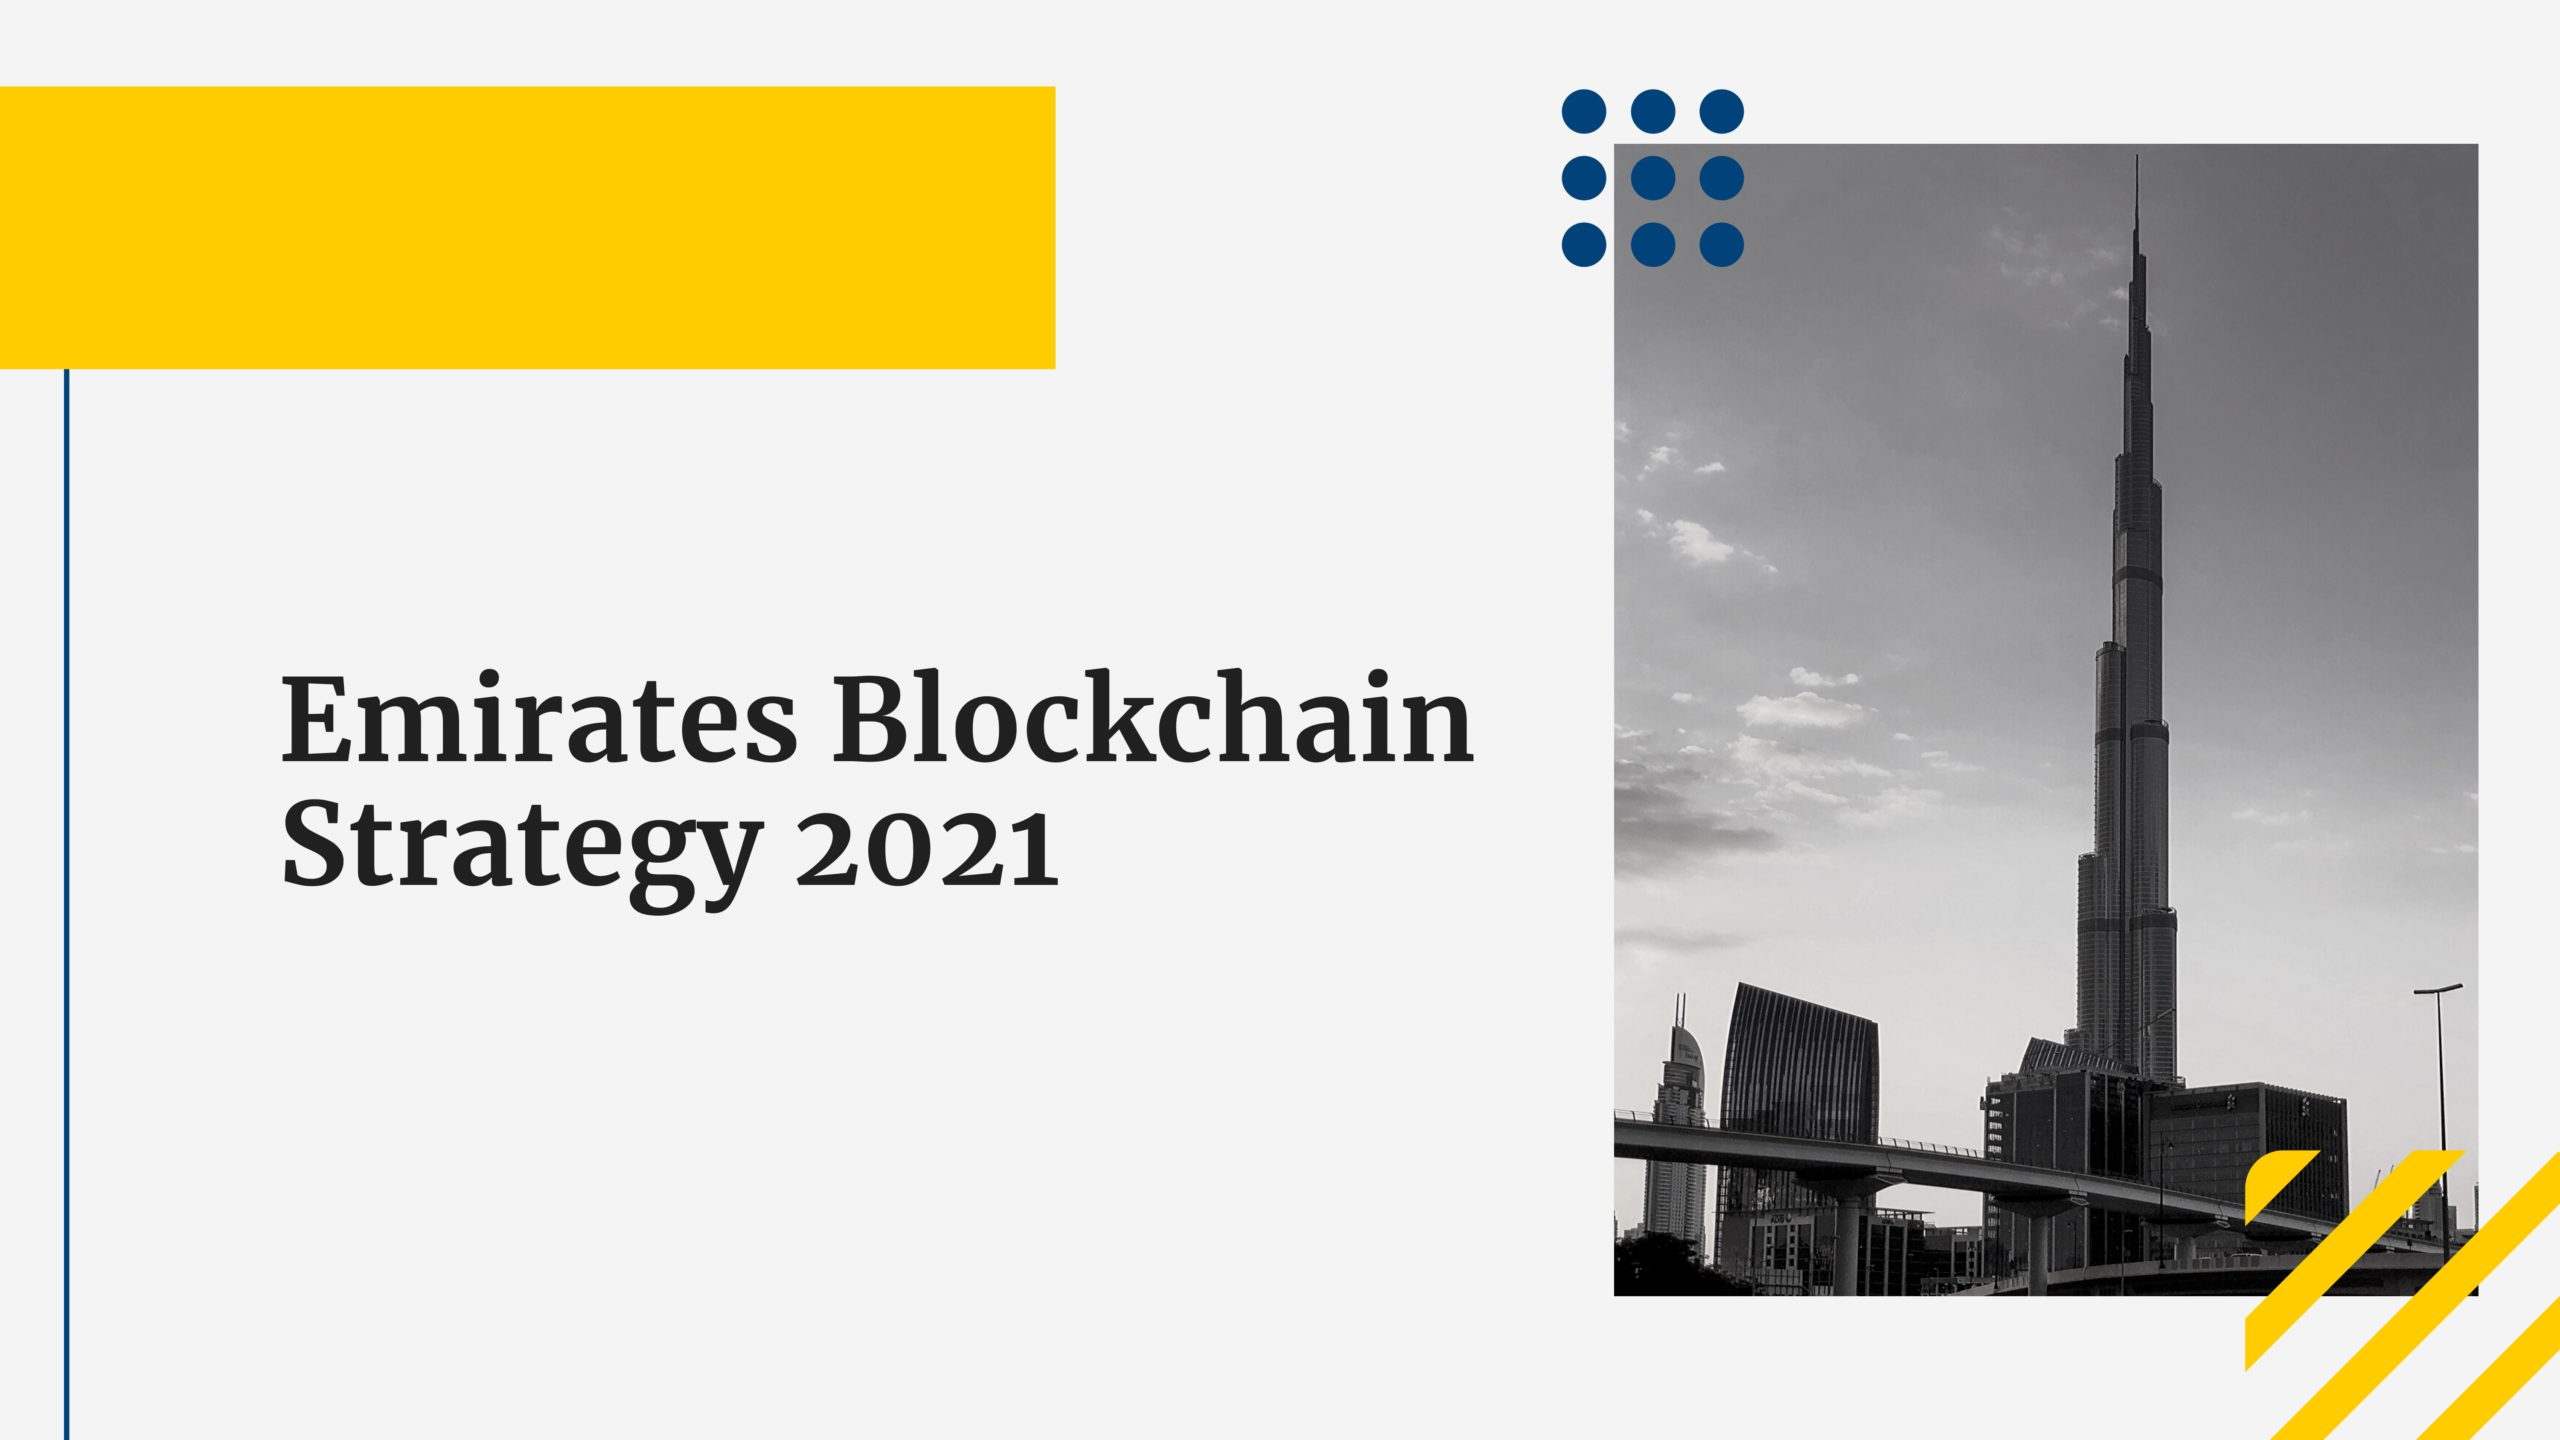 Emirates_Blockchain_2021